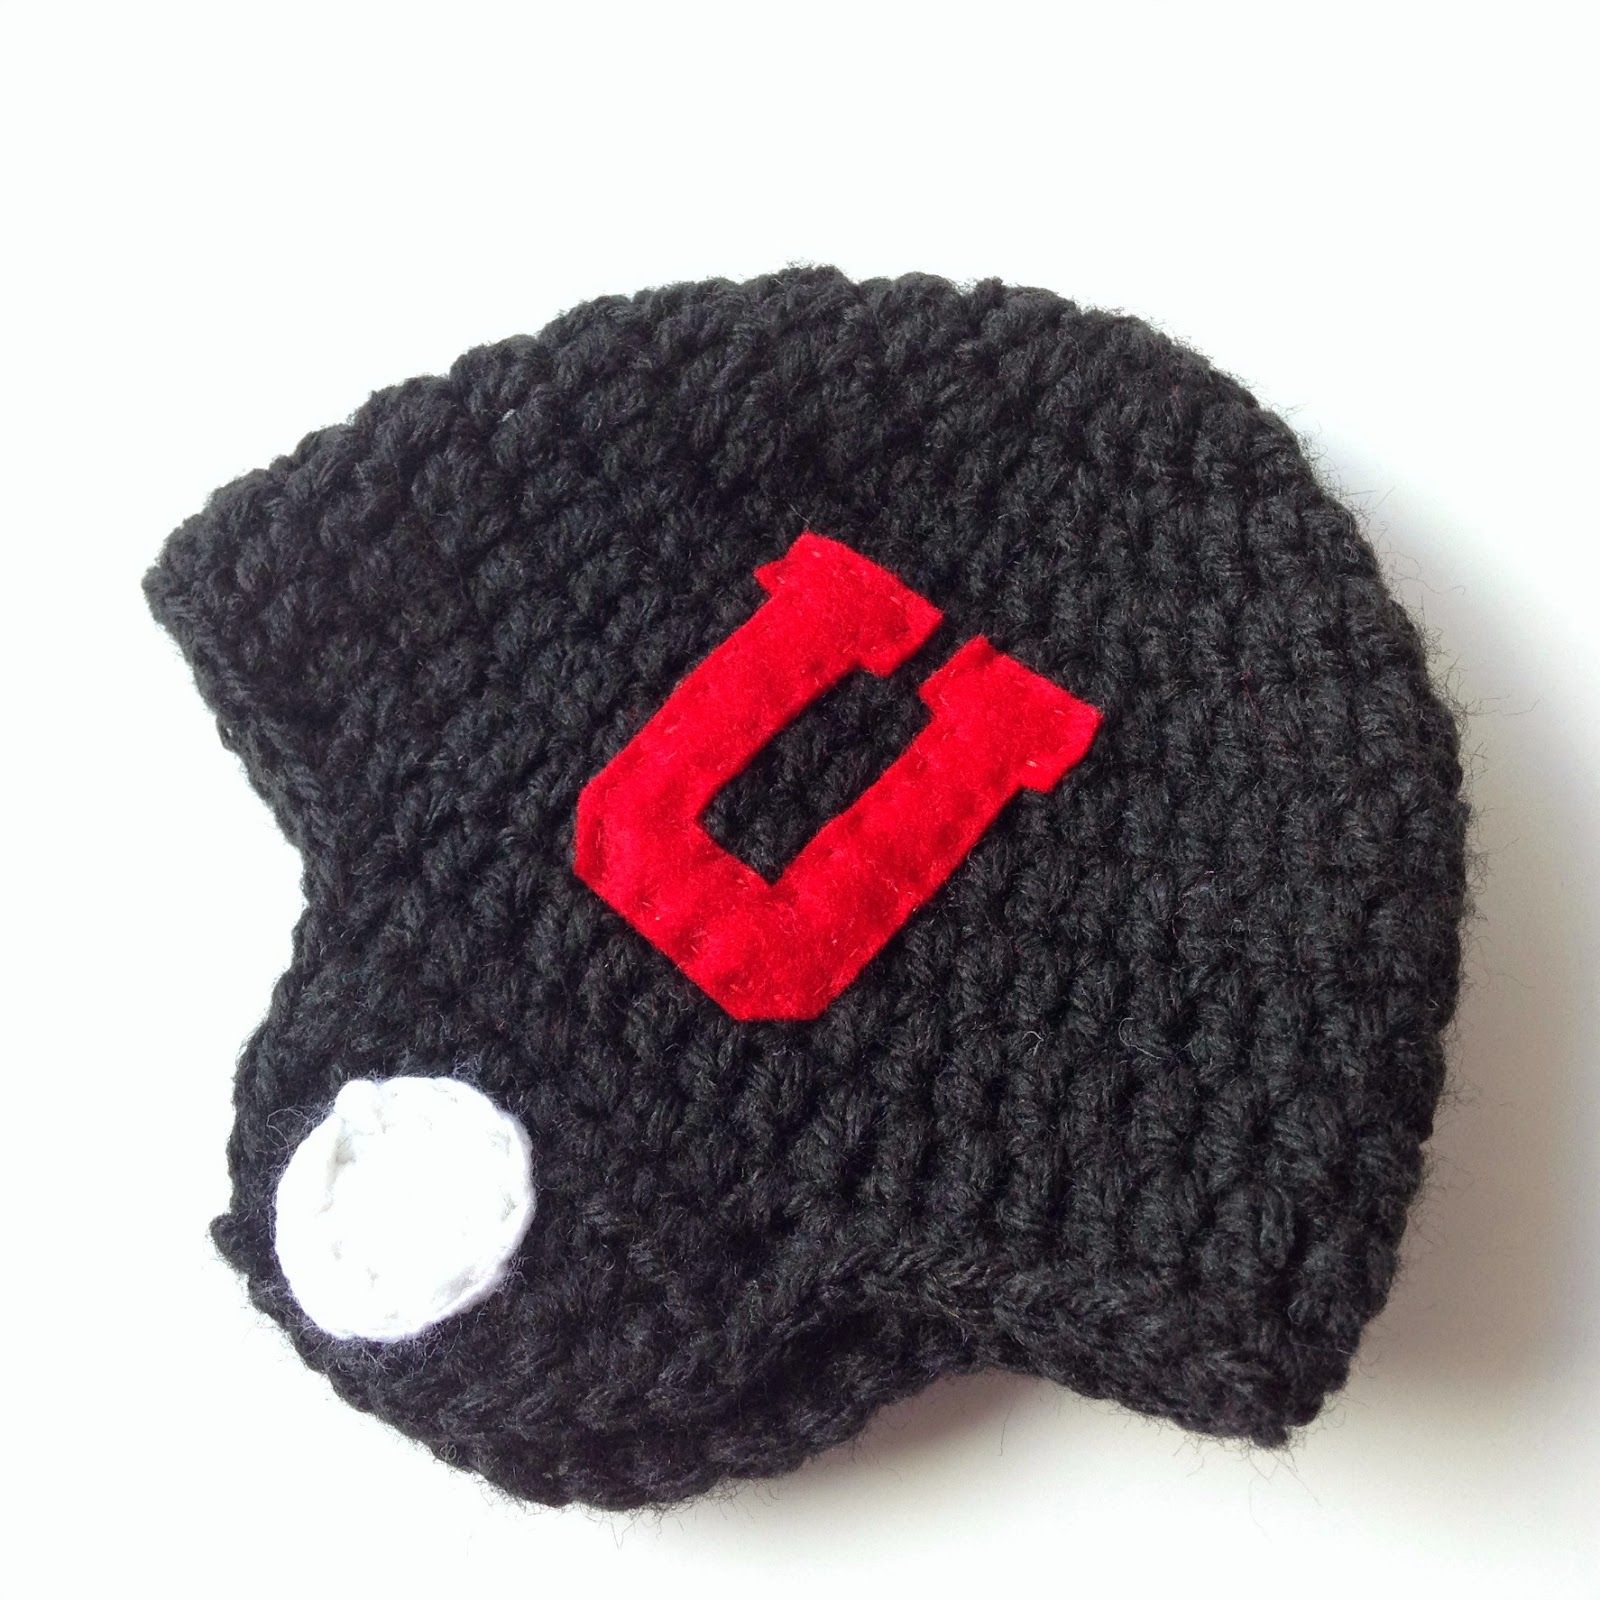 5 Little Monsters Crocheted Football Helmet Hats Free Pattern